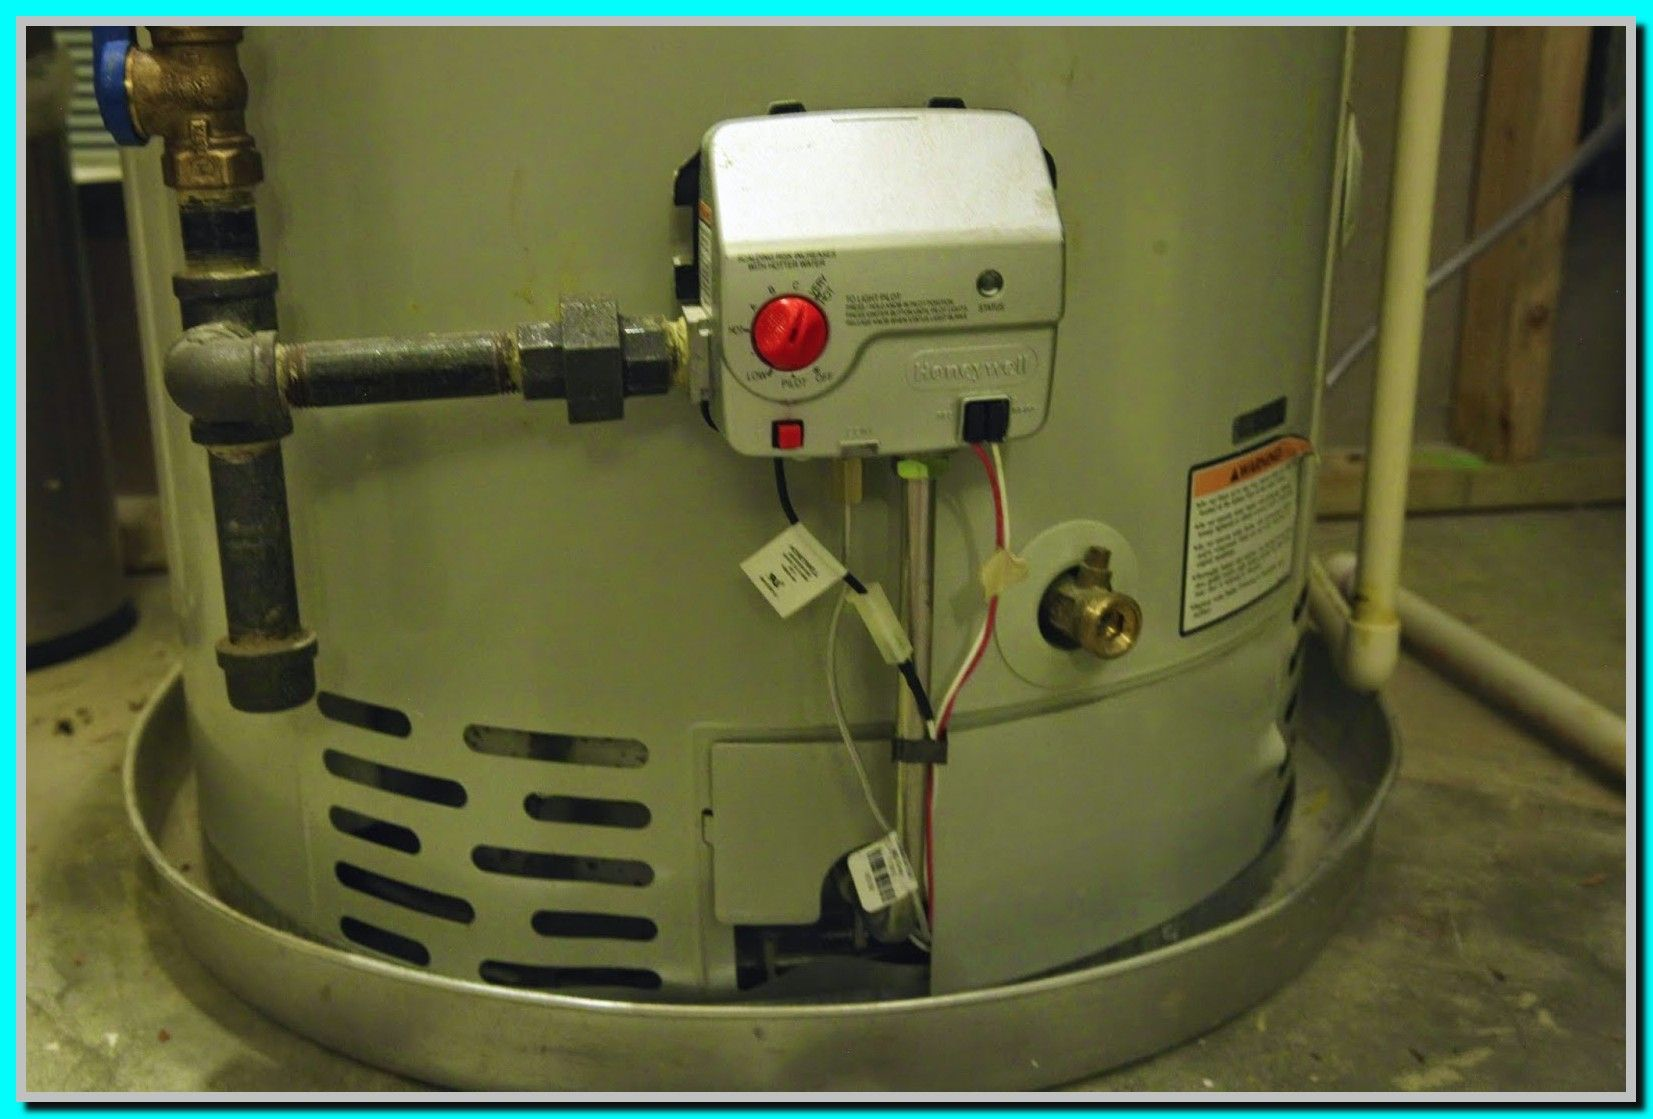 54 Reference Of Light Pilot On Hot Water Heater In 2020 Water Lighting Water Heater Hot Water Heater